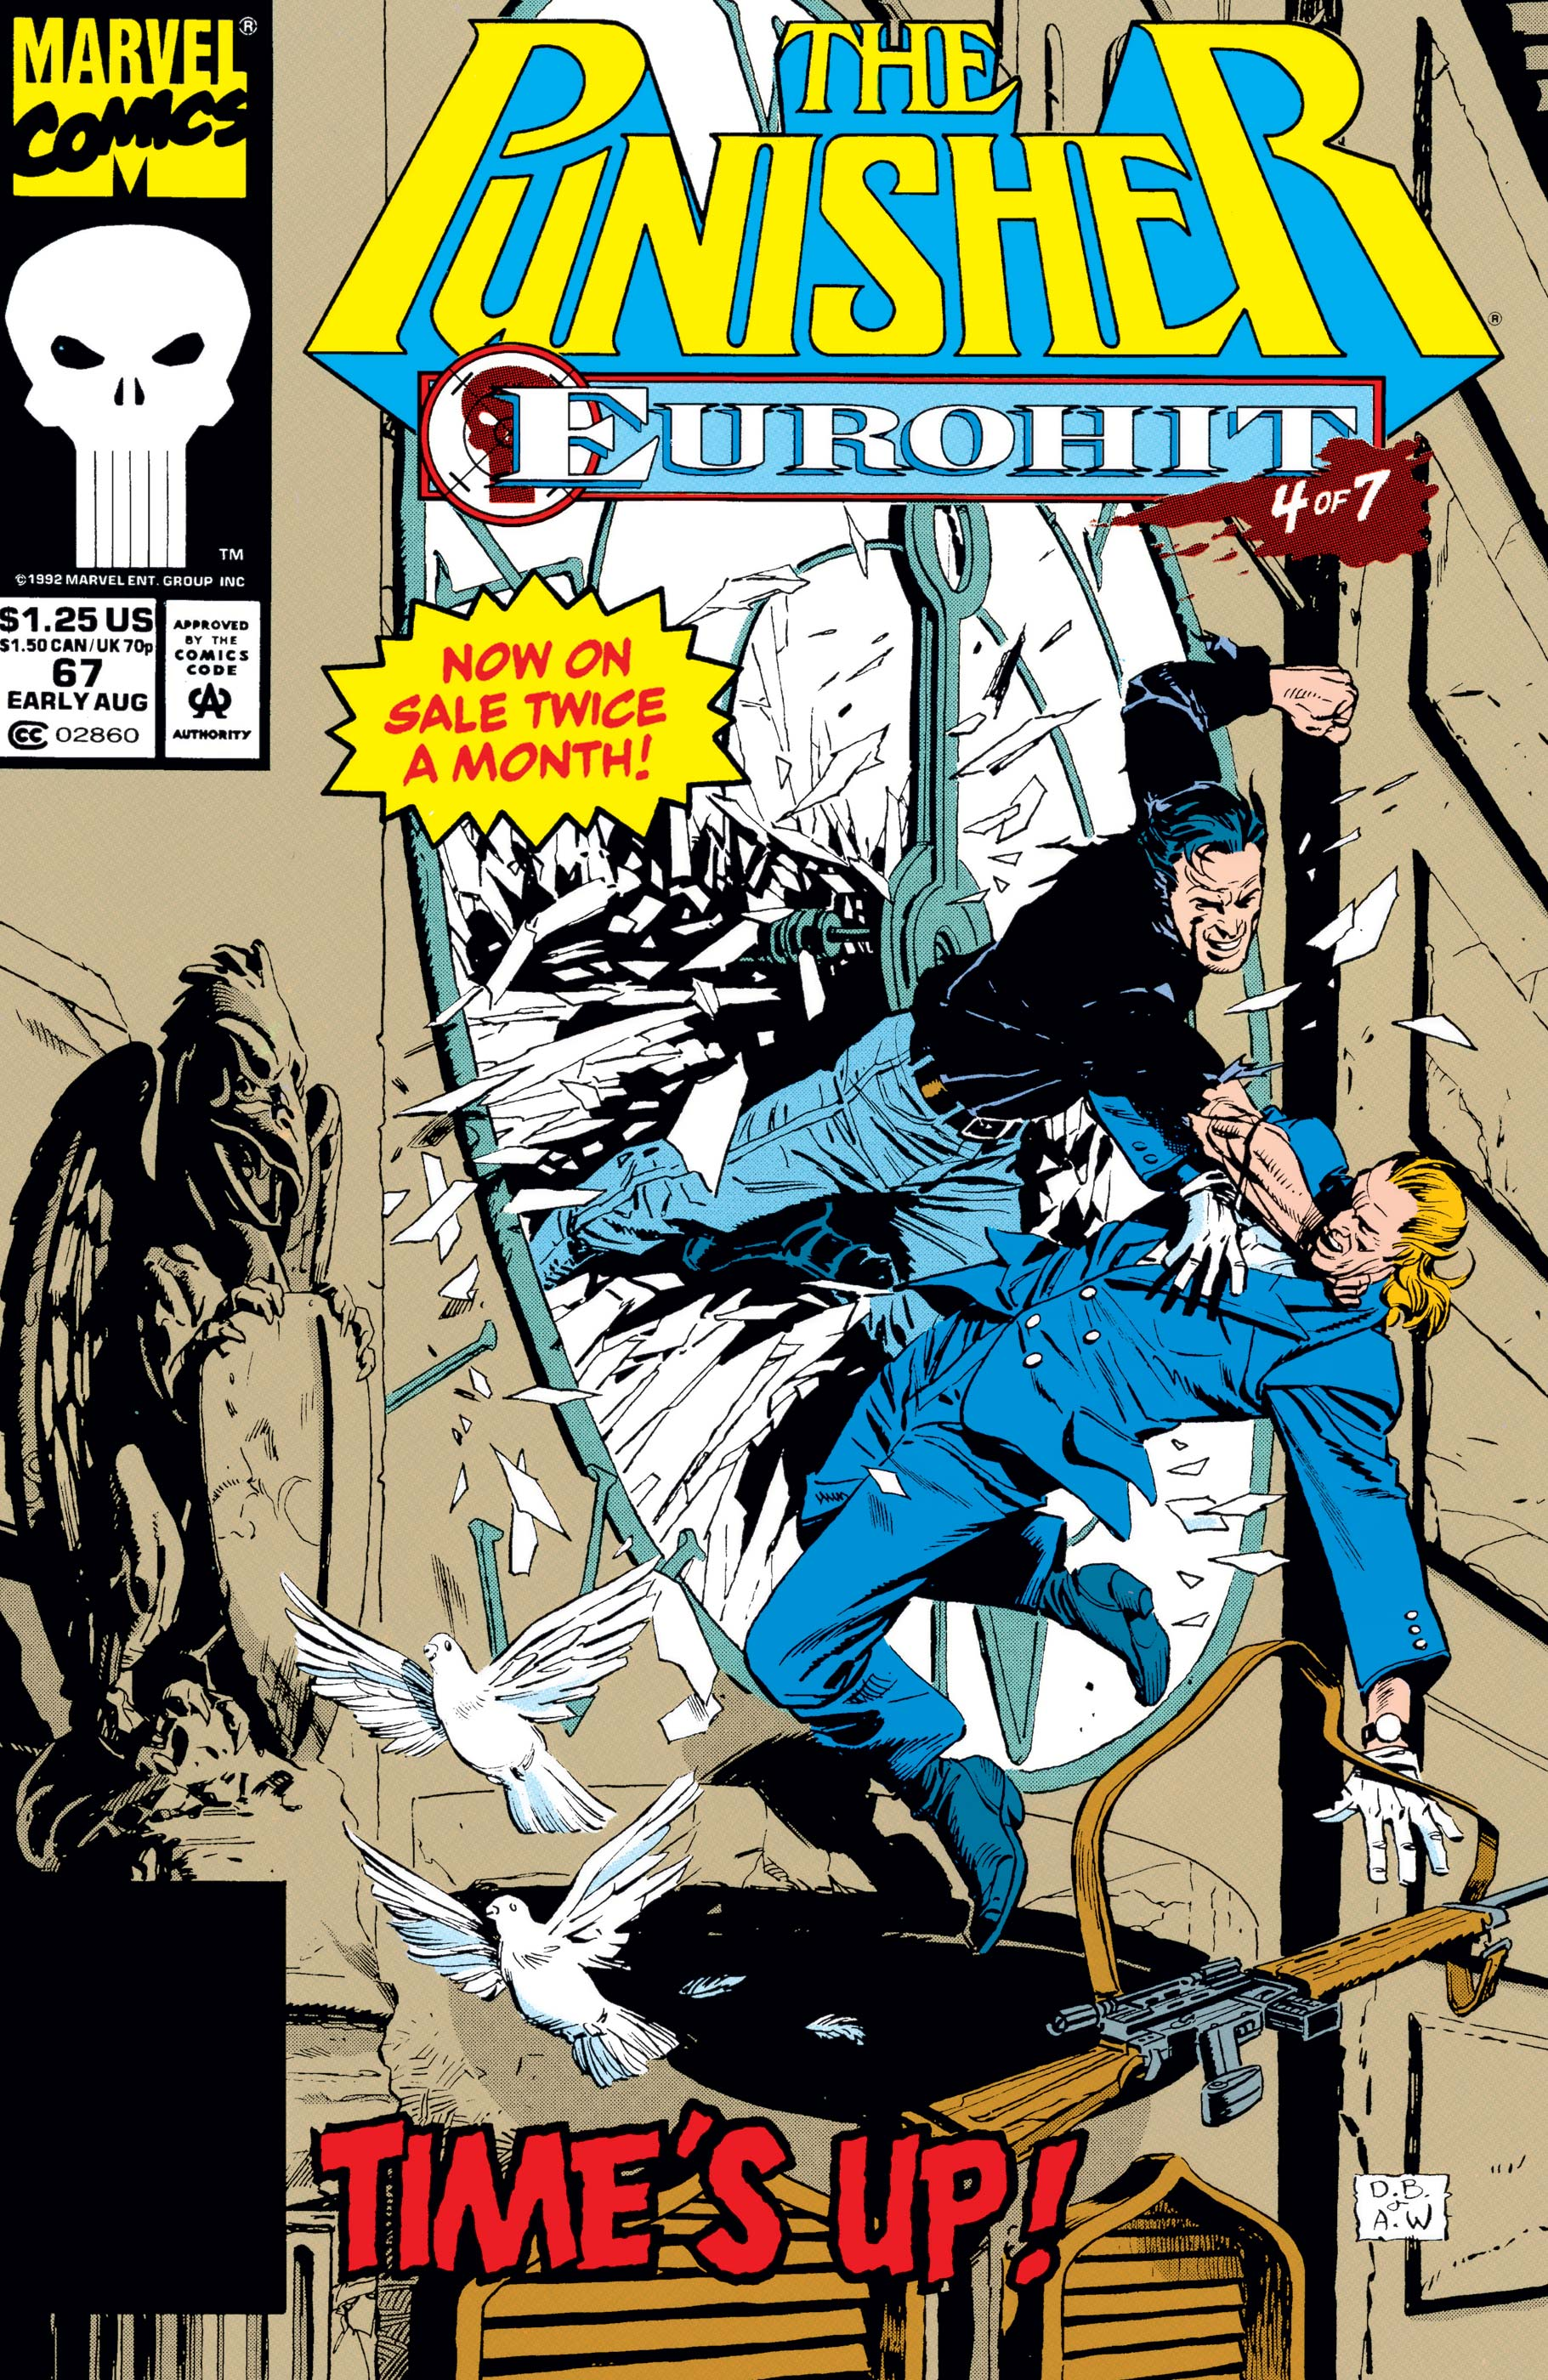 The Punisher (1987) #67